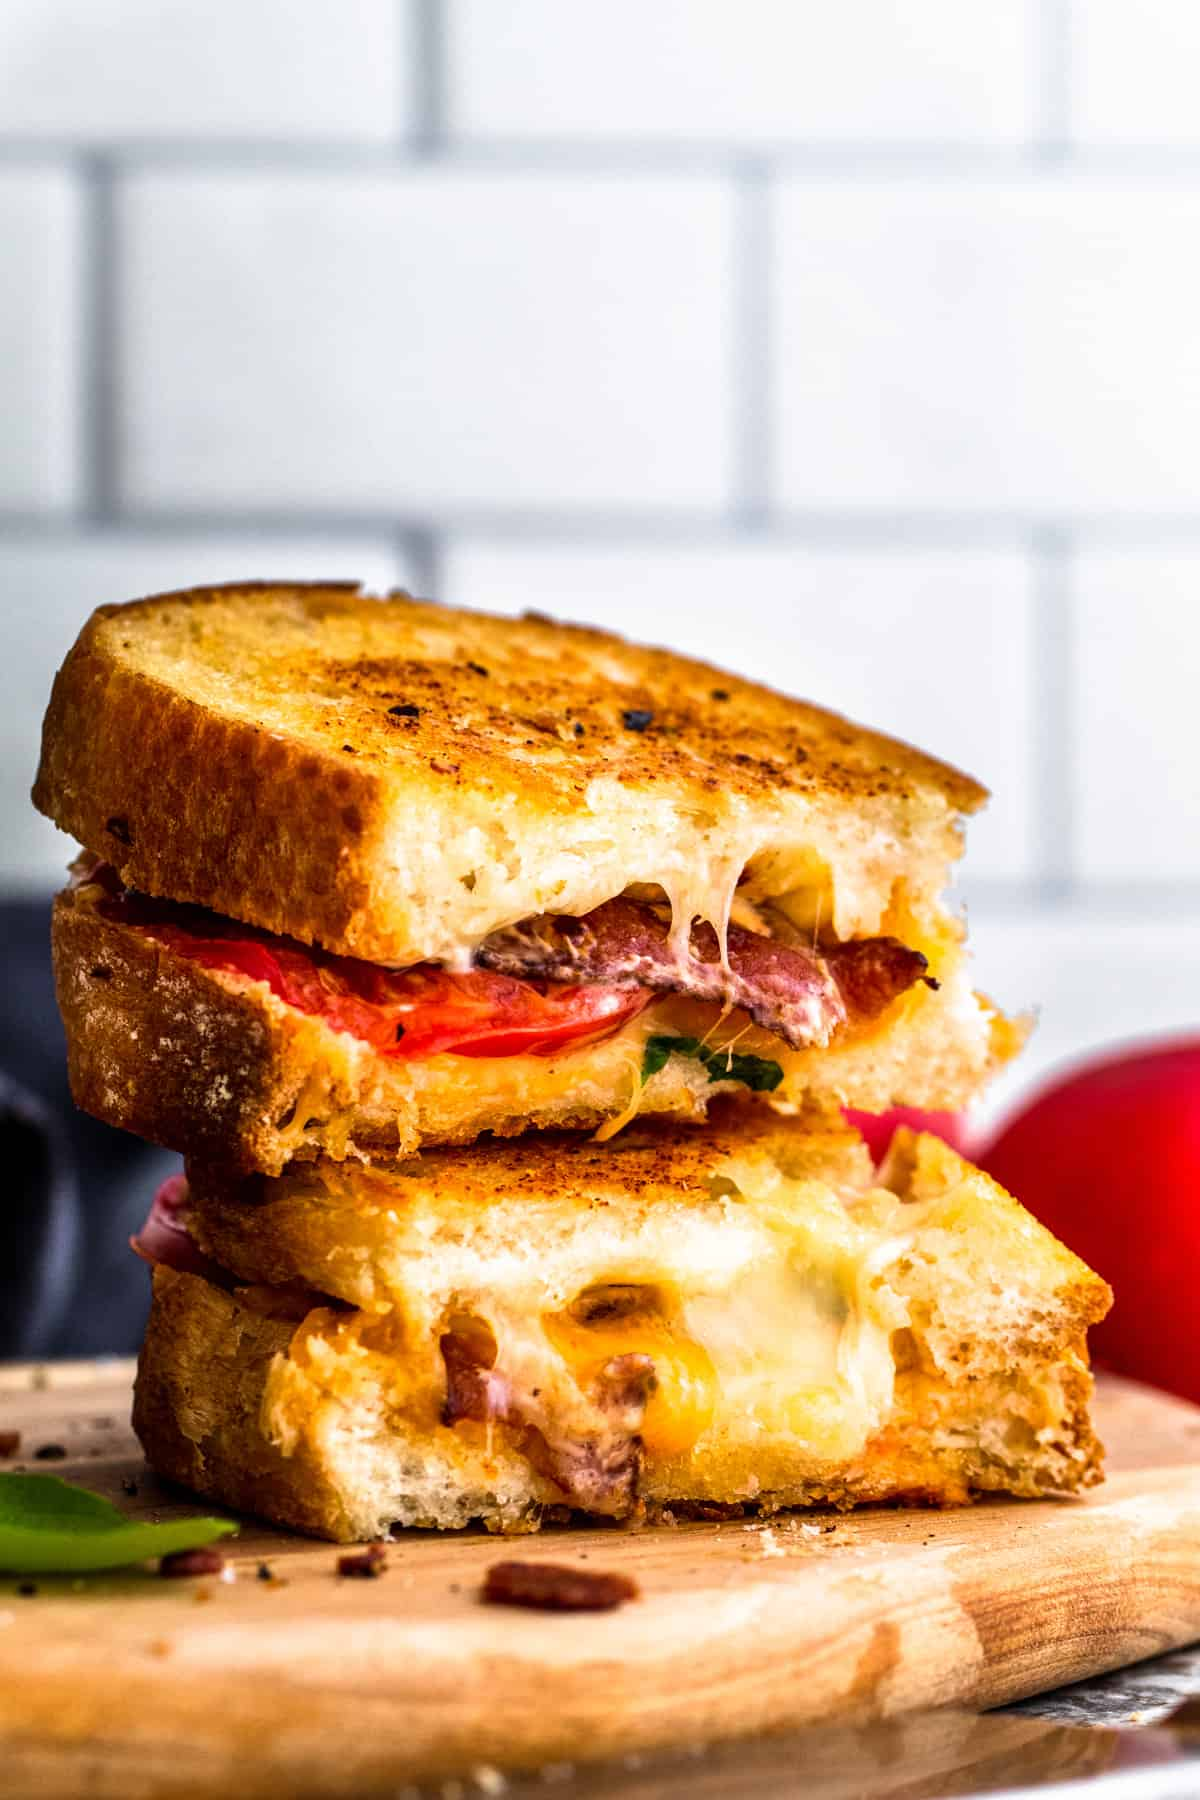 Stack of two bacon grilled cheese sandwiches on wooden cutting board.